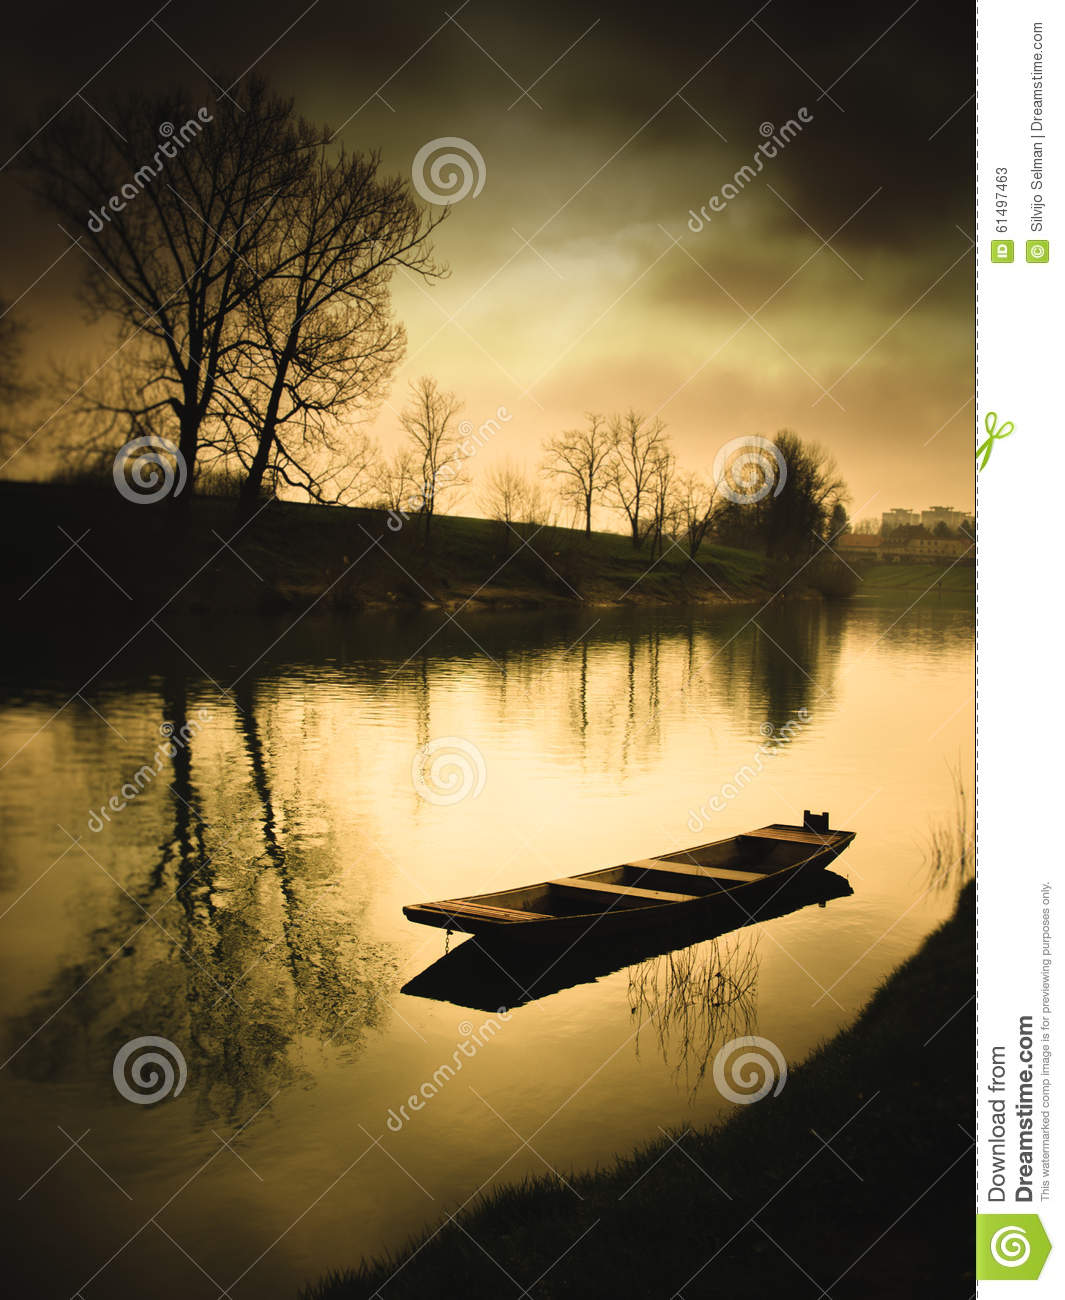 Abstract surreal view with boat on the river